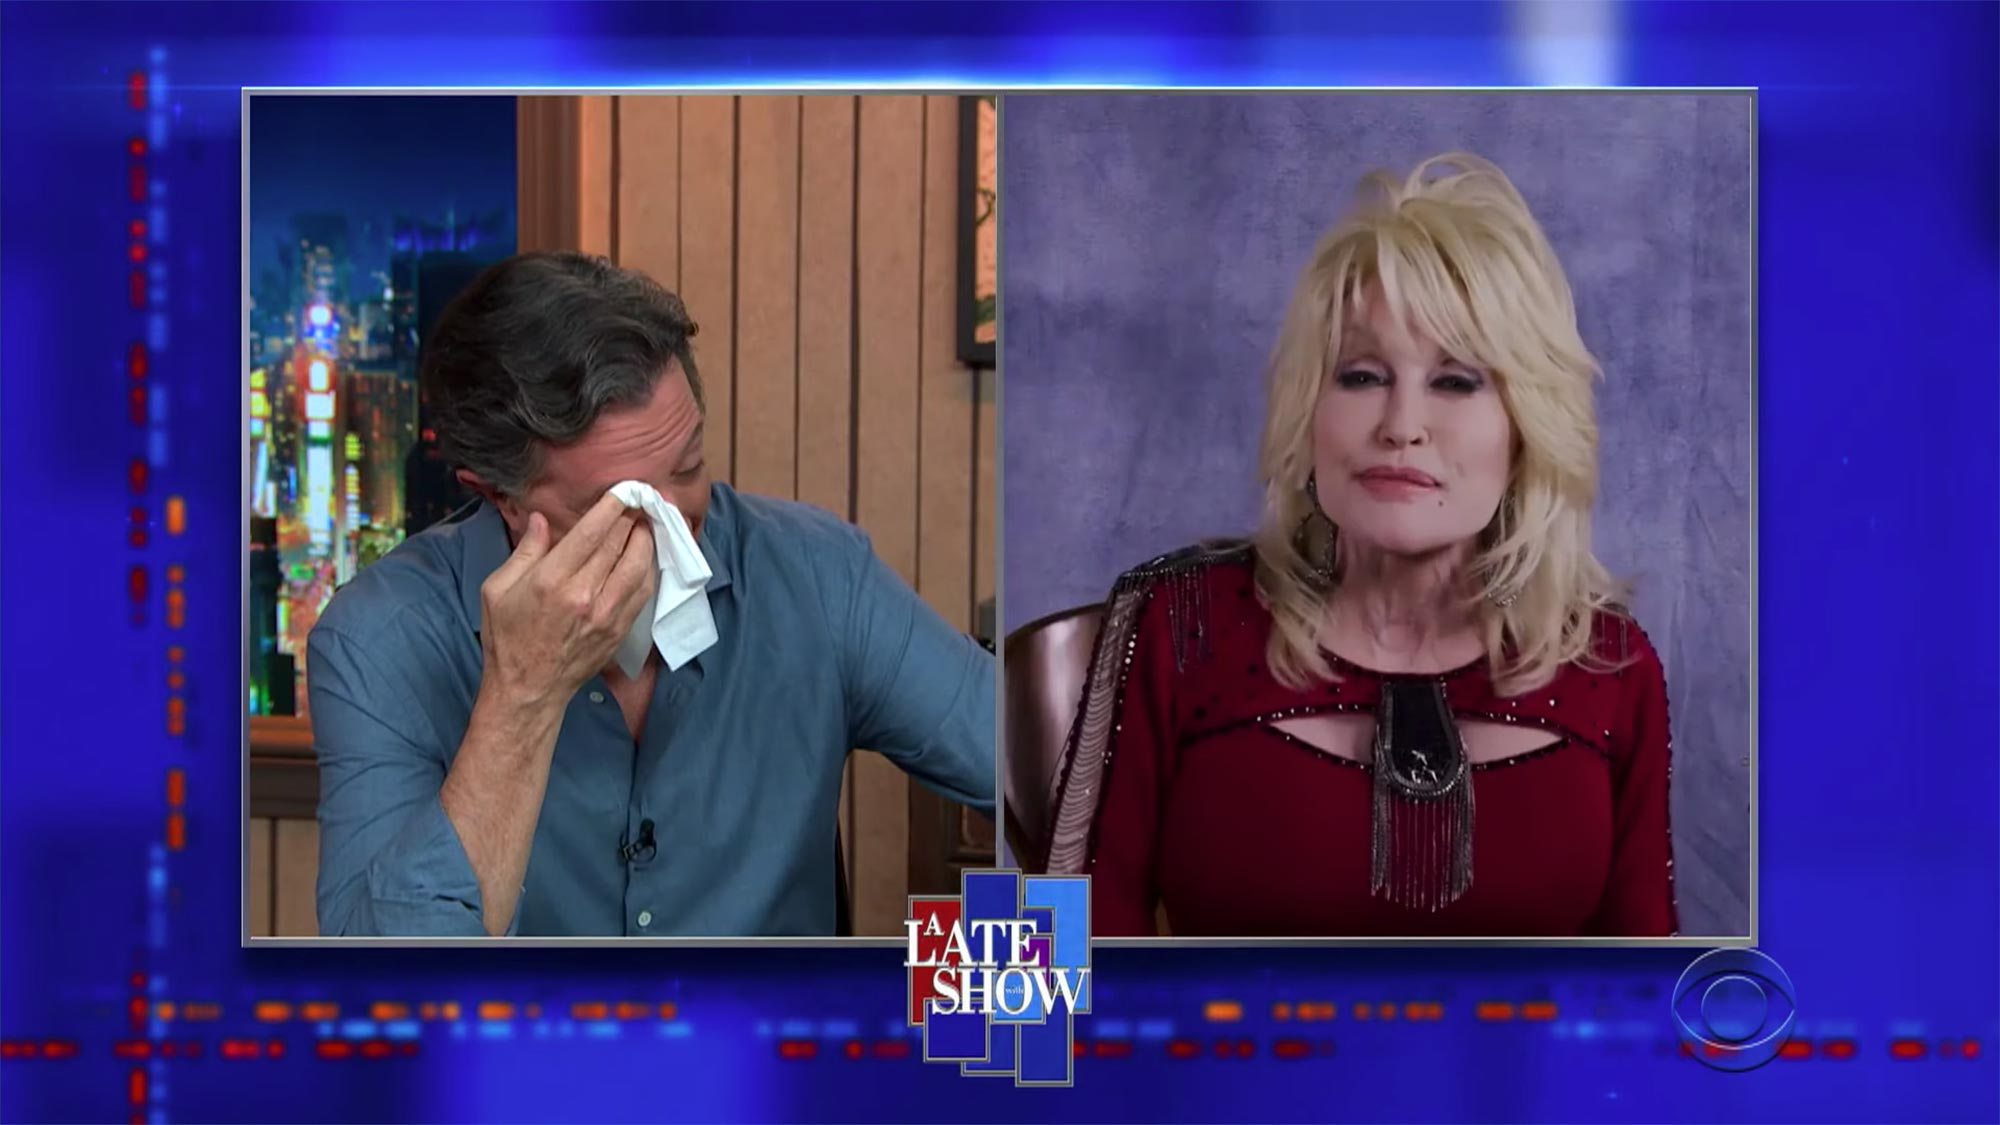 Dolly Parton's Mom Used To Sing Songs That Told Great Stories- The Late Show with Stephen Colbert